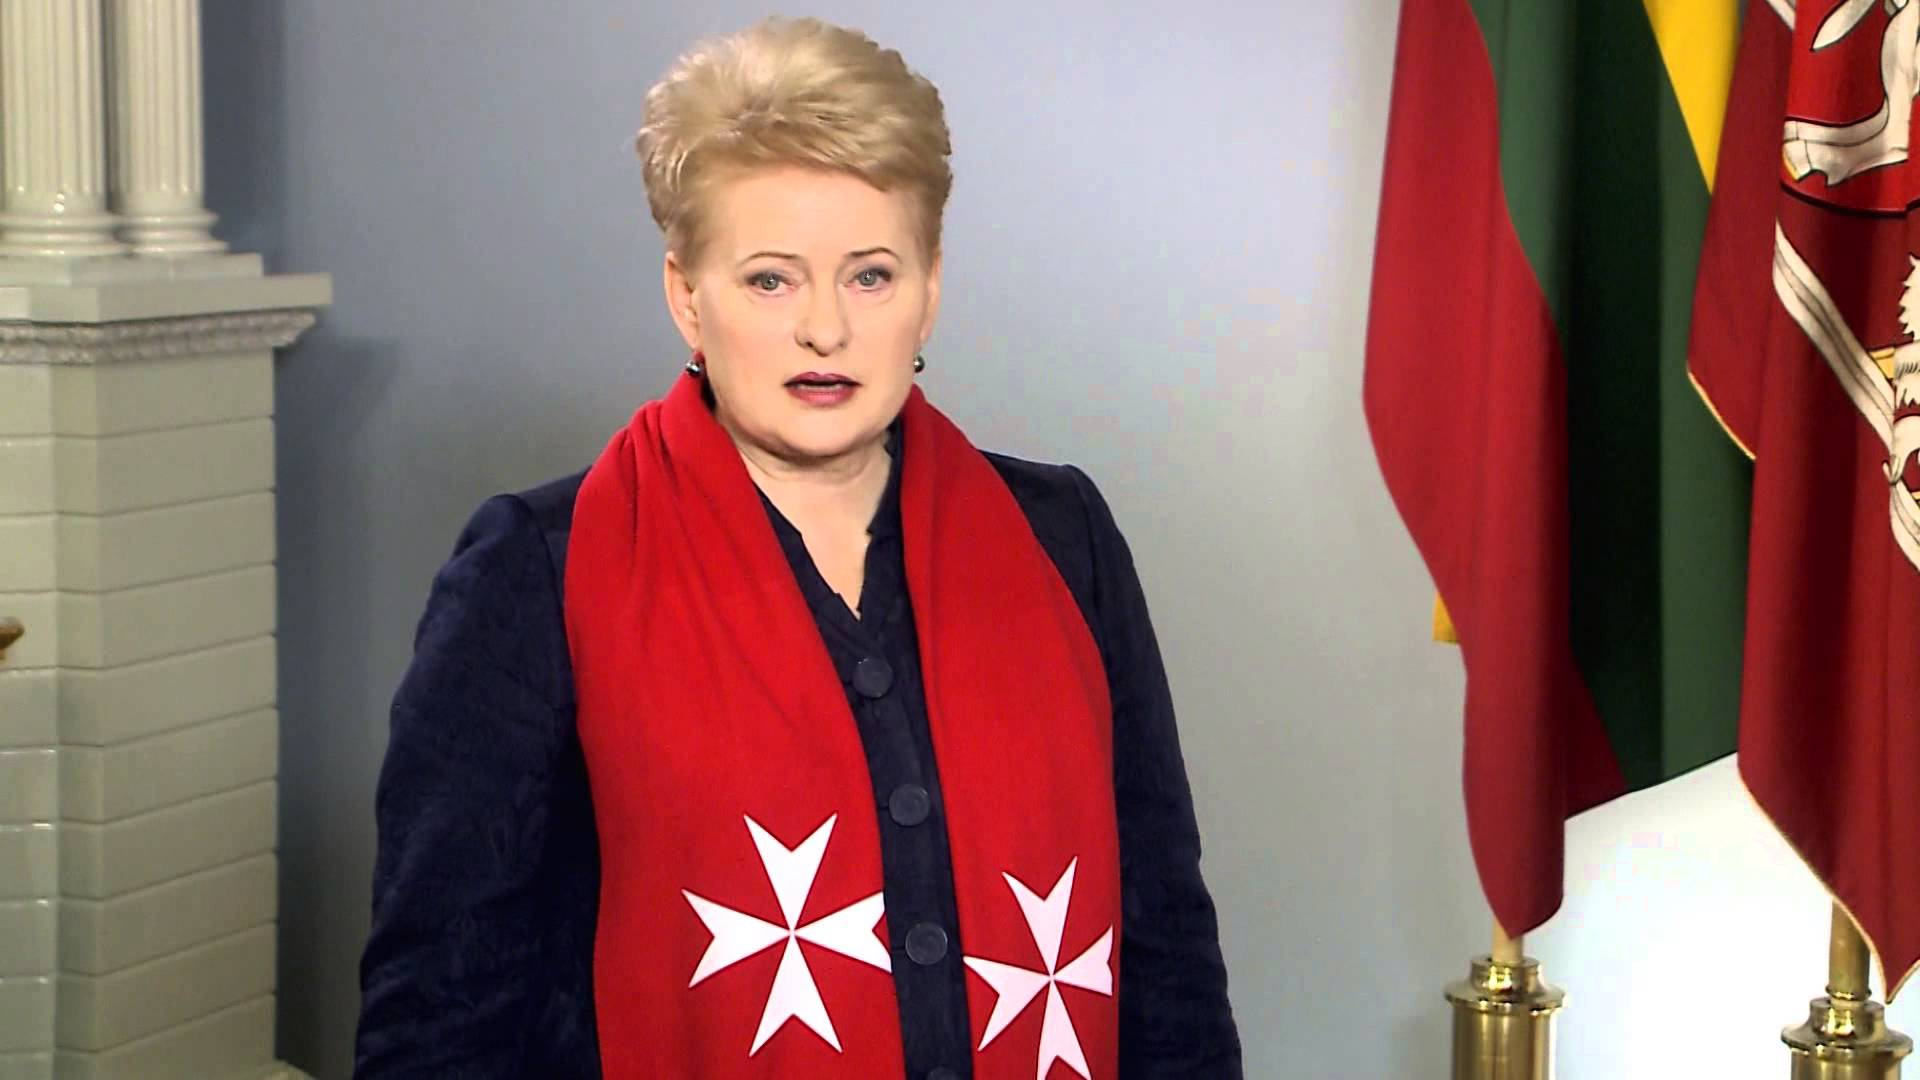 President of Lithuania: biography and career of Dali Grybauskaite 31